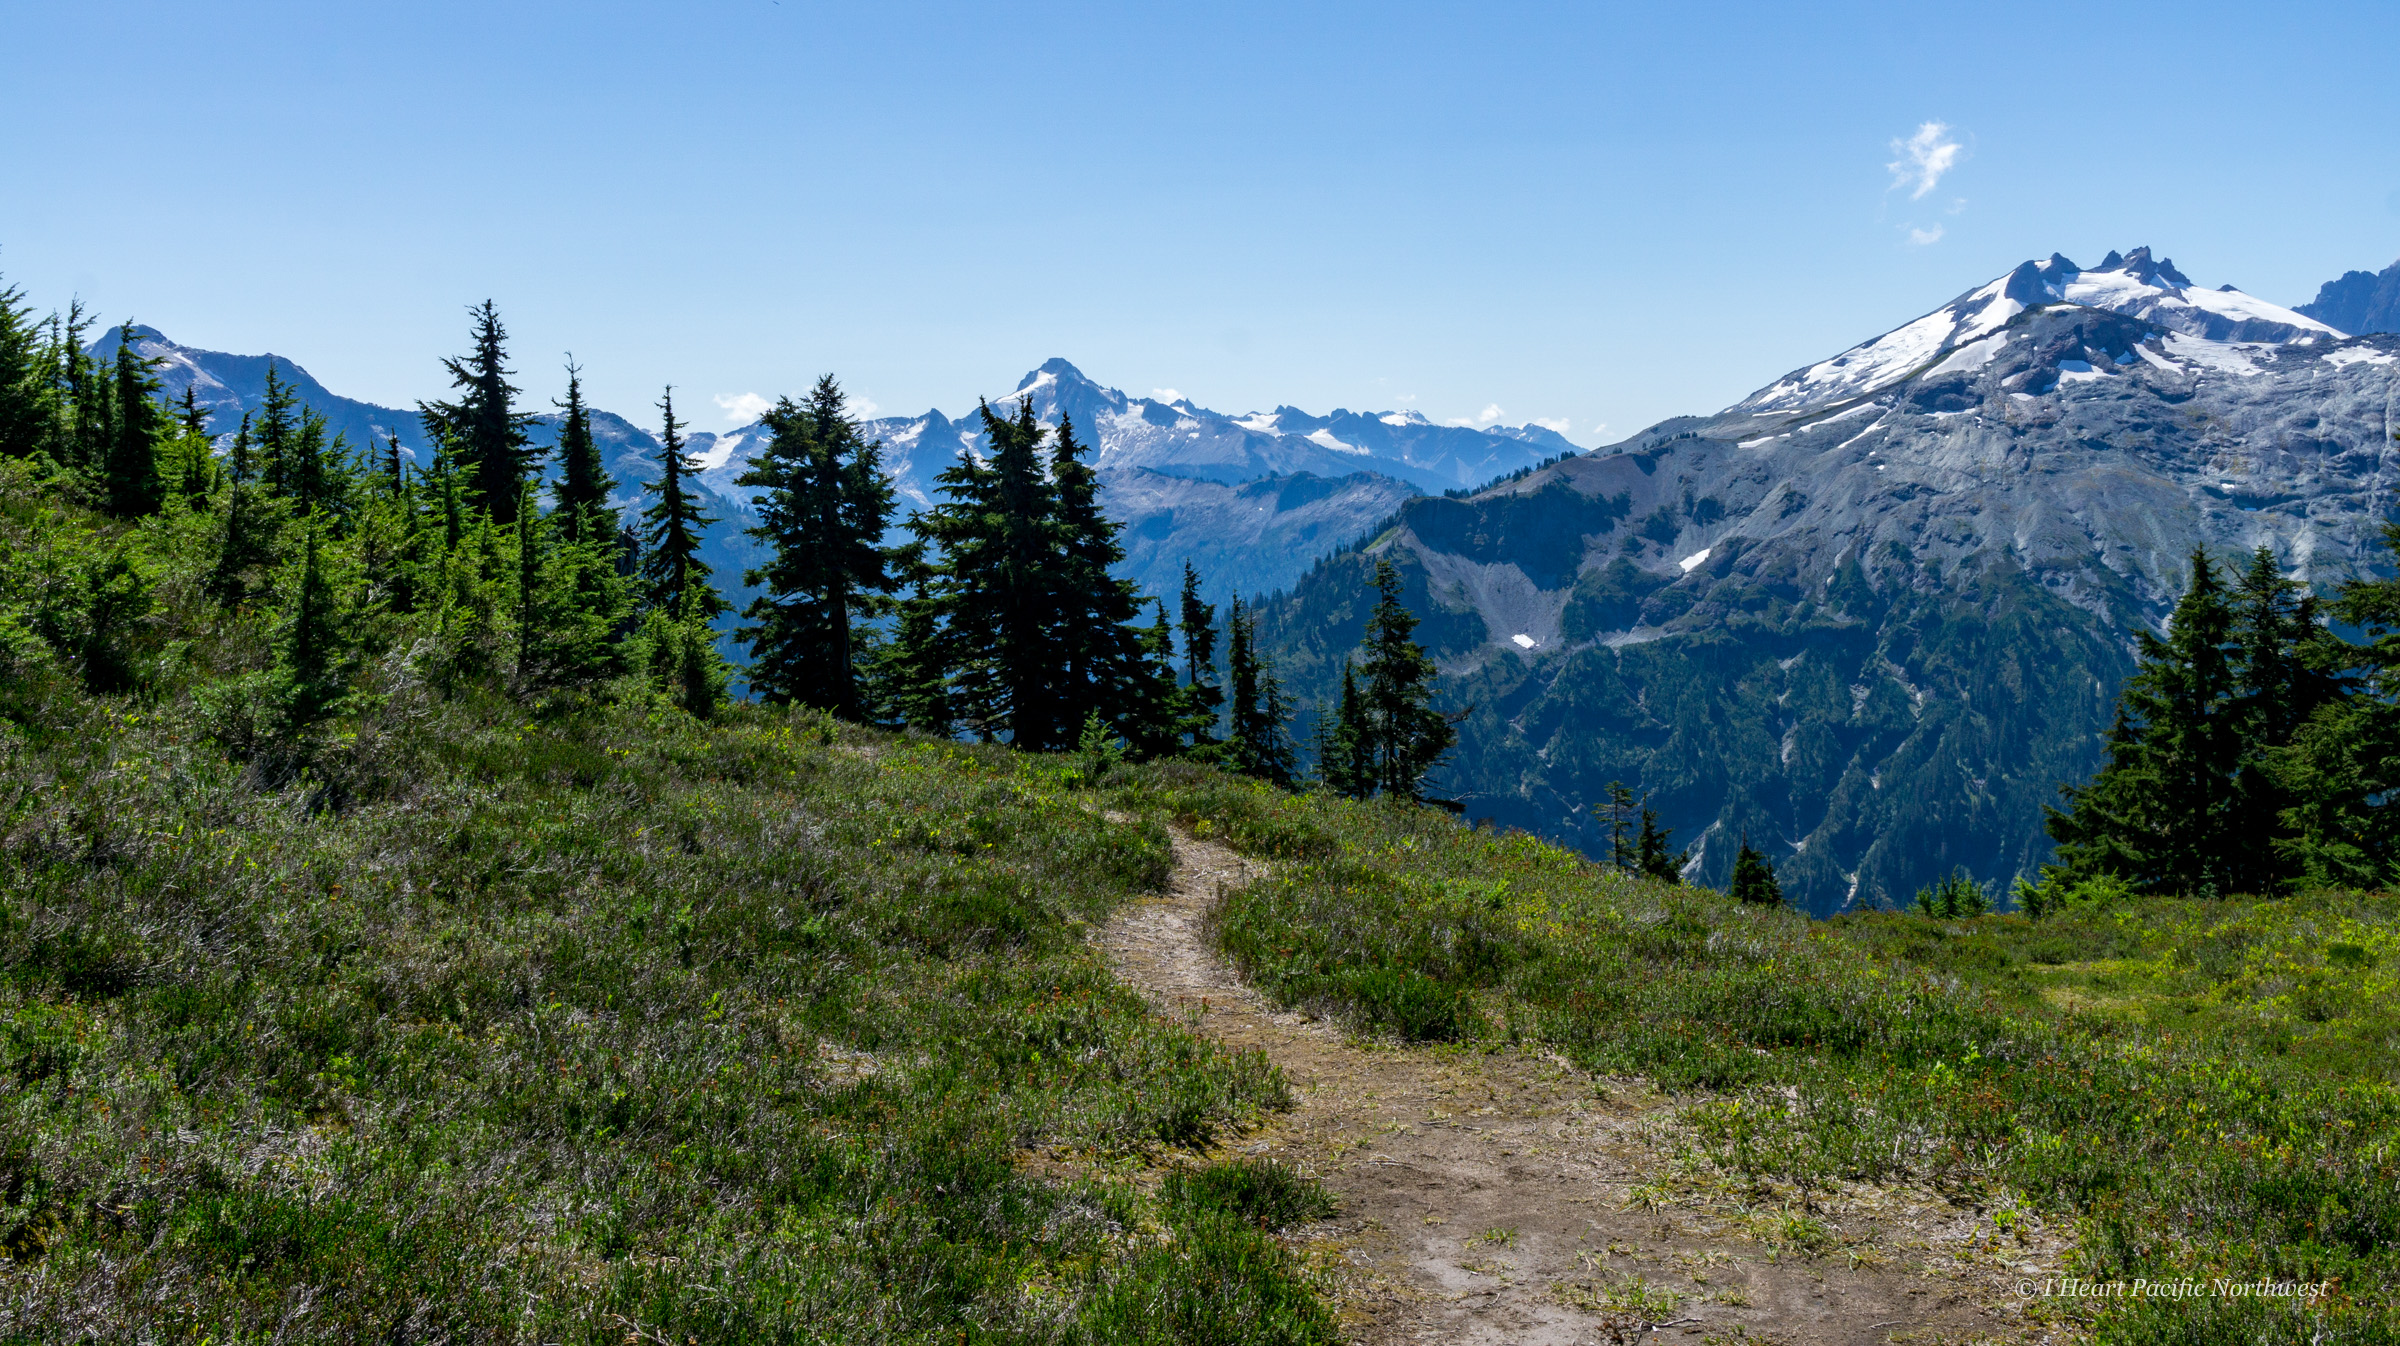 North Cascades: Copper Ridge backpack